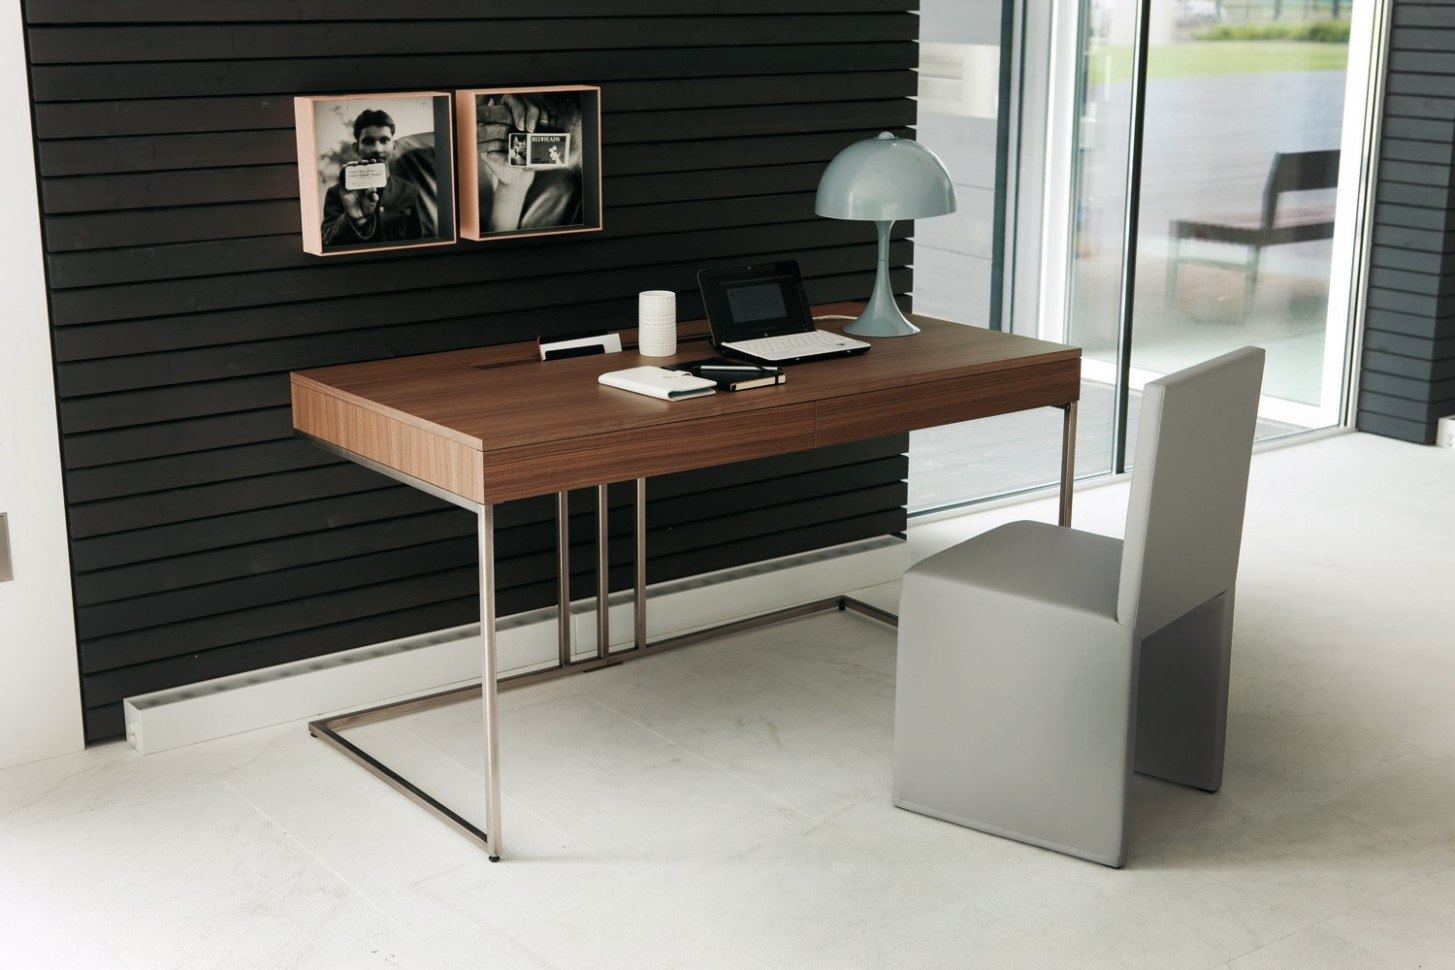 10 Inspirational Home Office Desks - Home Office Table Ideas